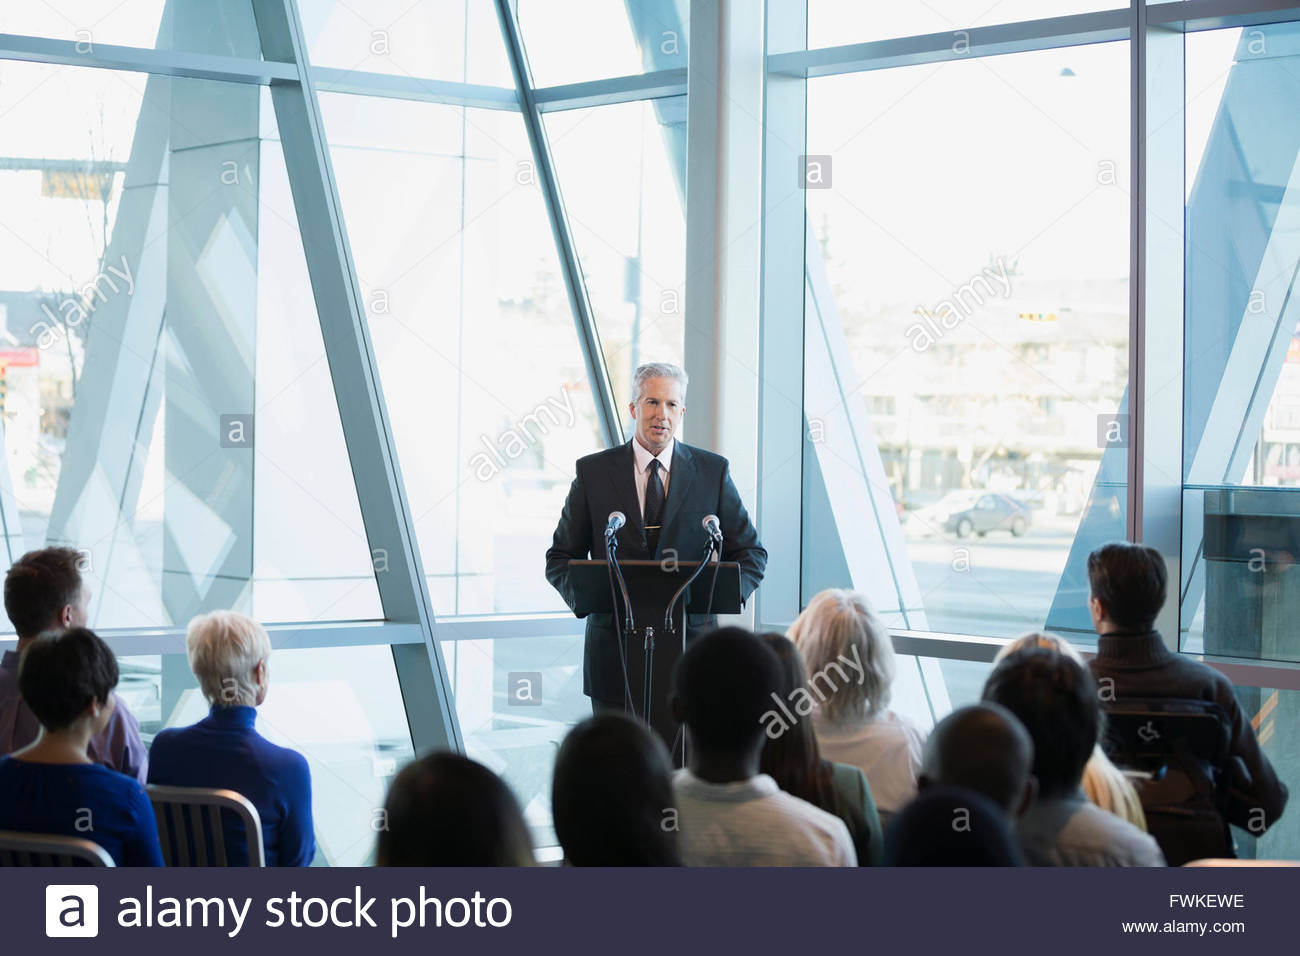 Politician speaking to audience at political rally - Stock Image